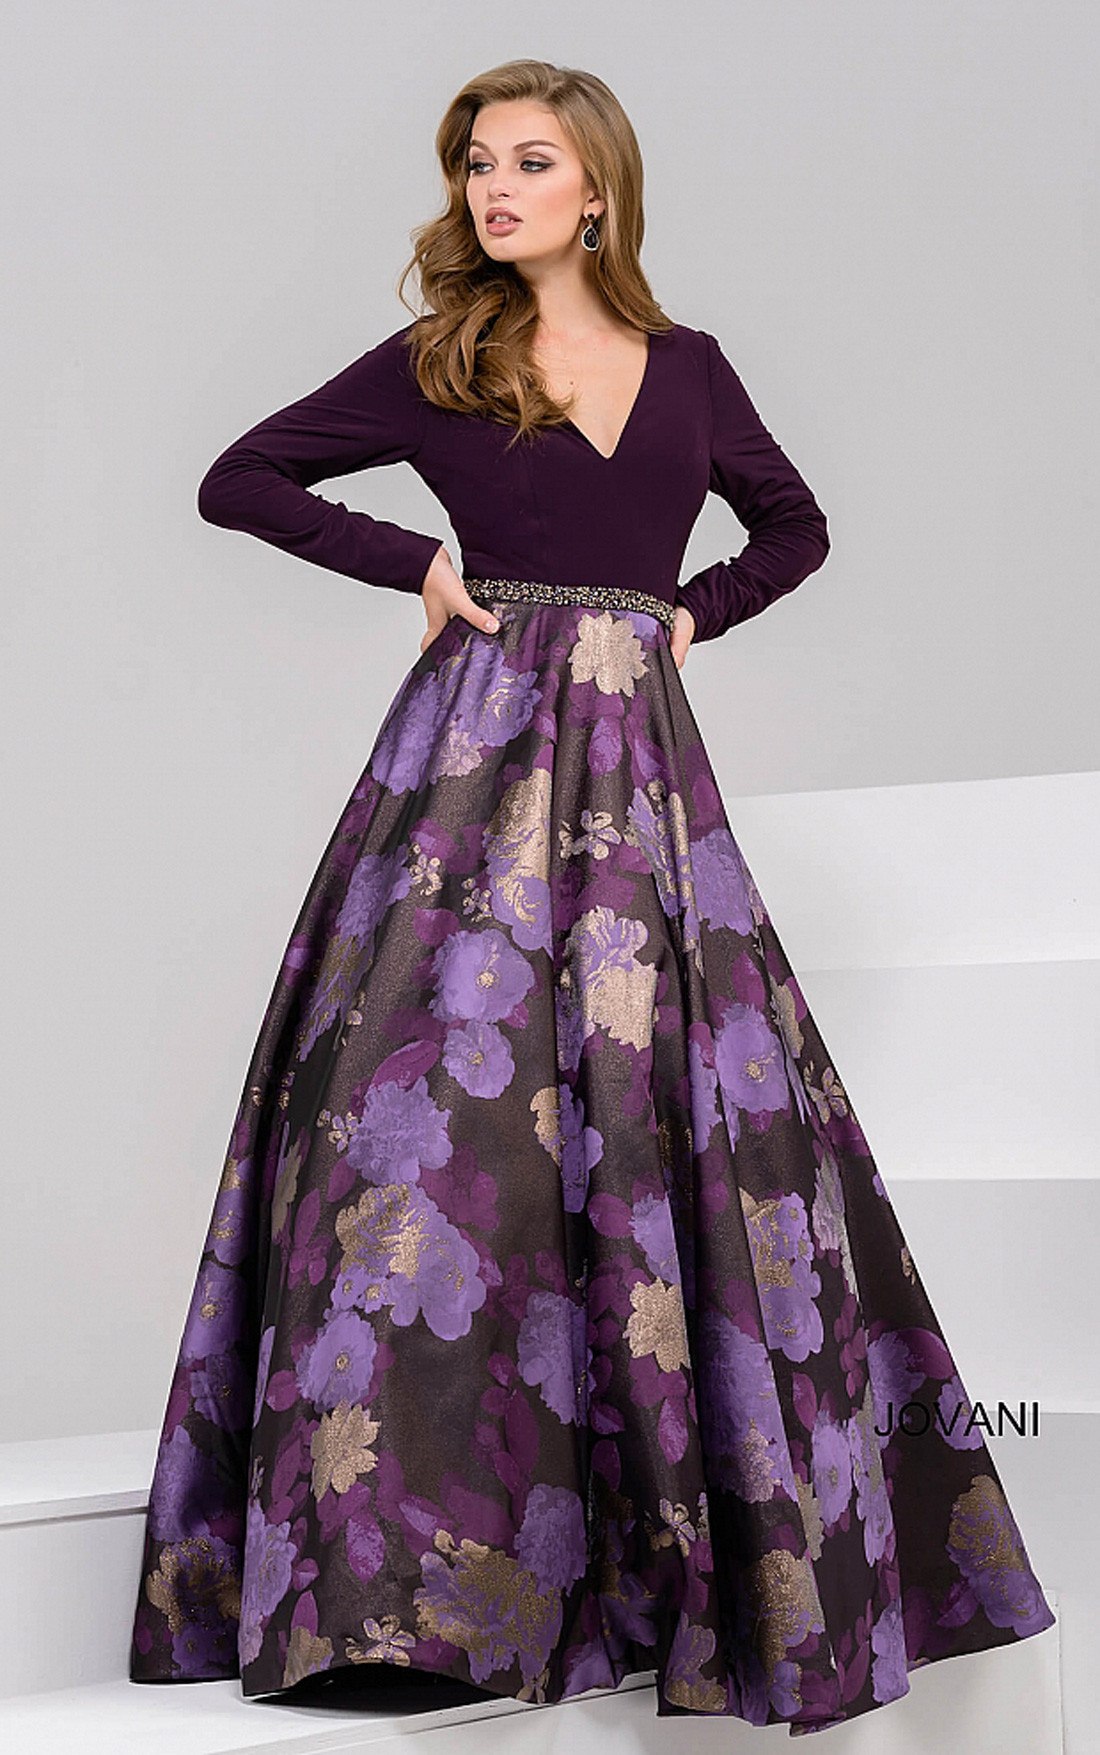 Jovani Dresses | Womens Dark Purple Long Sleeve Deep V Neckline ...